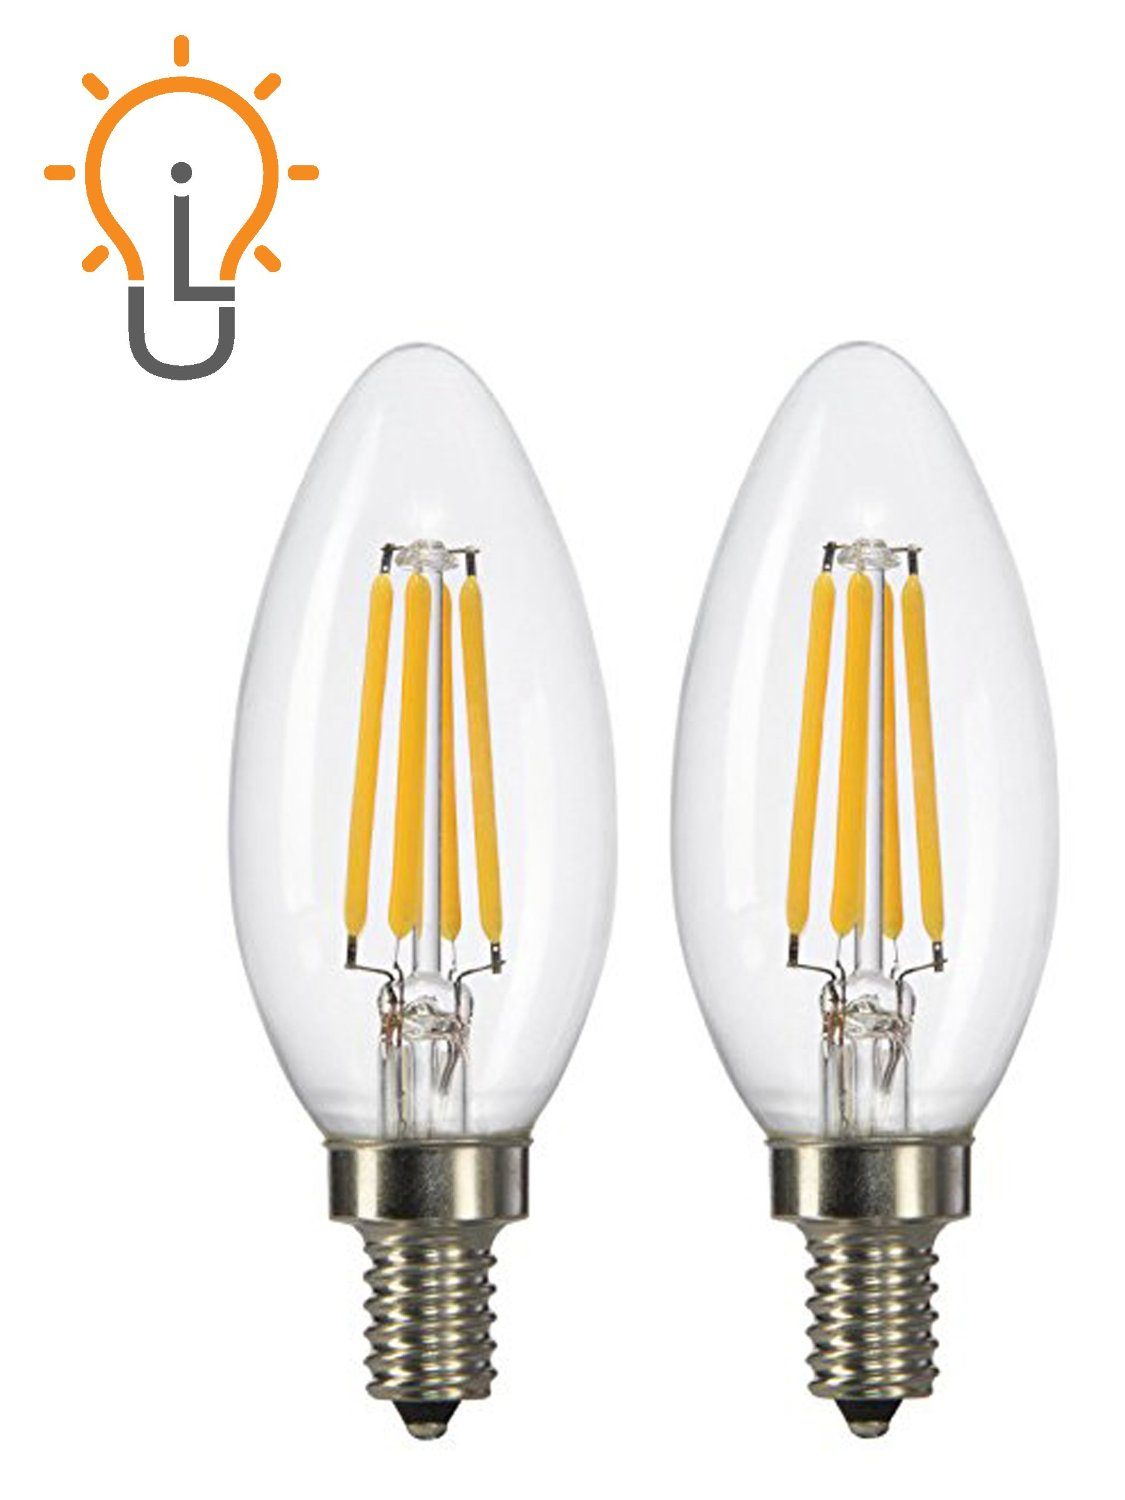 (2-Pack) Light Itup CTC LED, 45-Watt Replacement, Antique Style Filament, Candelabra E12 Base, Warm White 2700K, Dimmable, Light Bulb